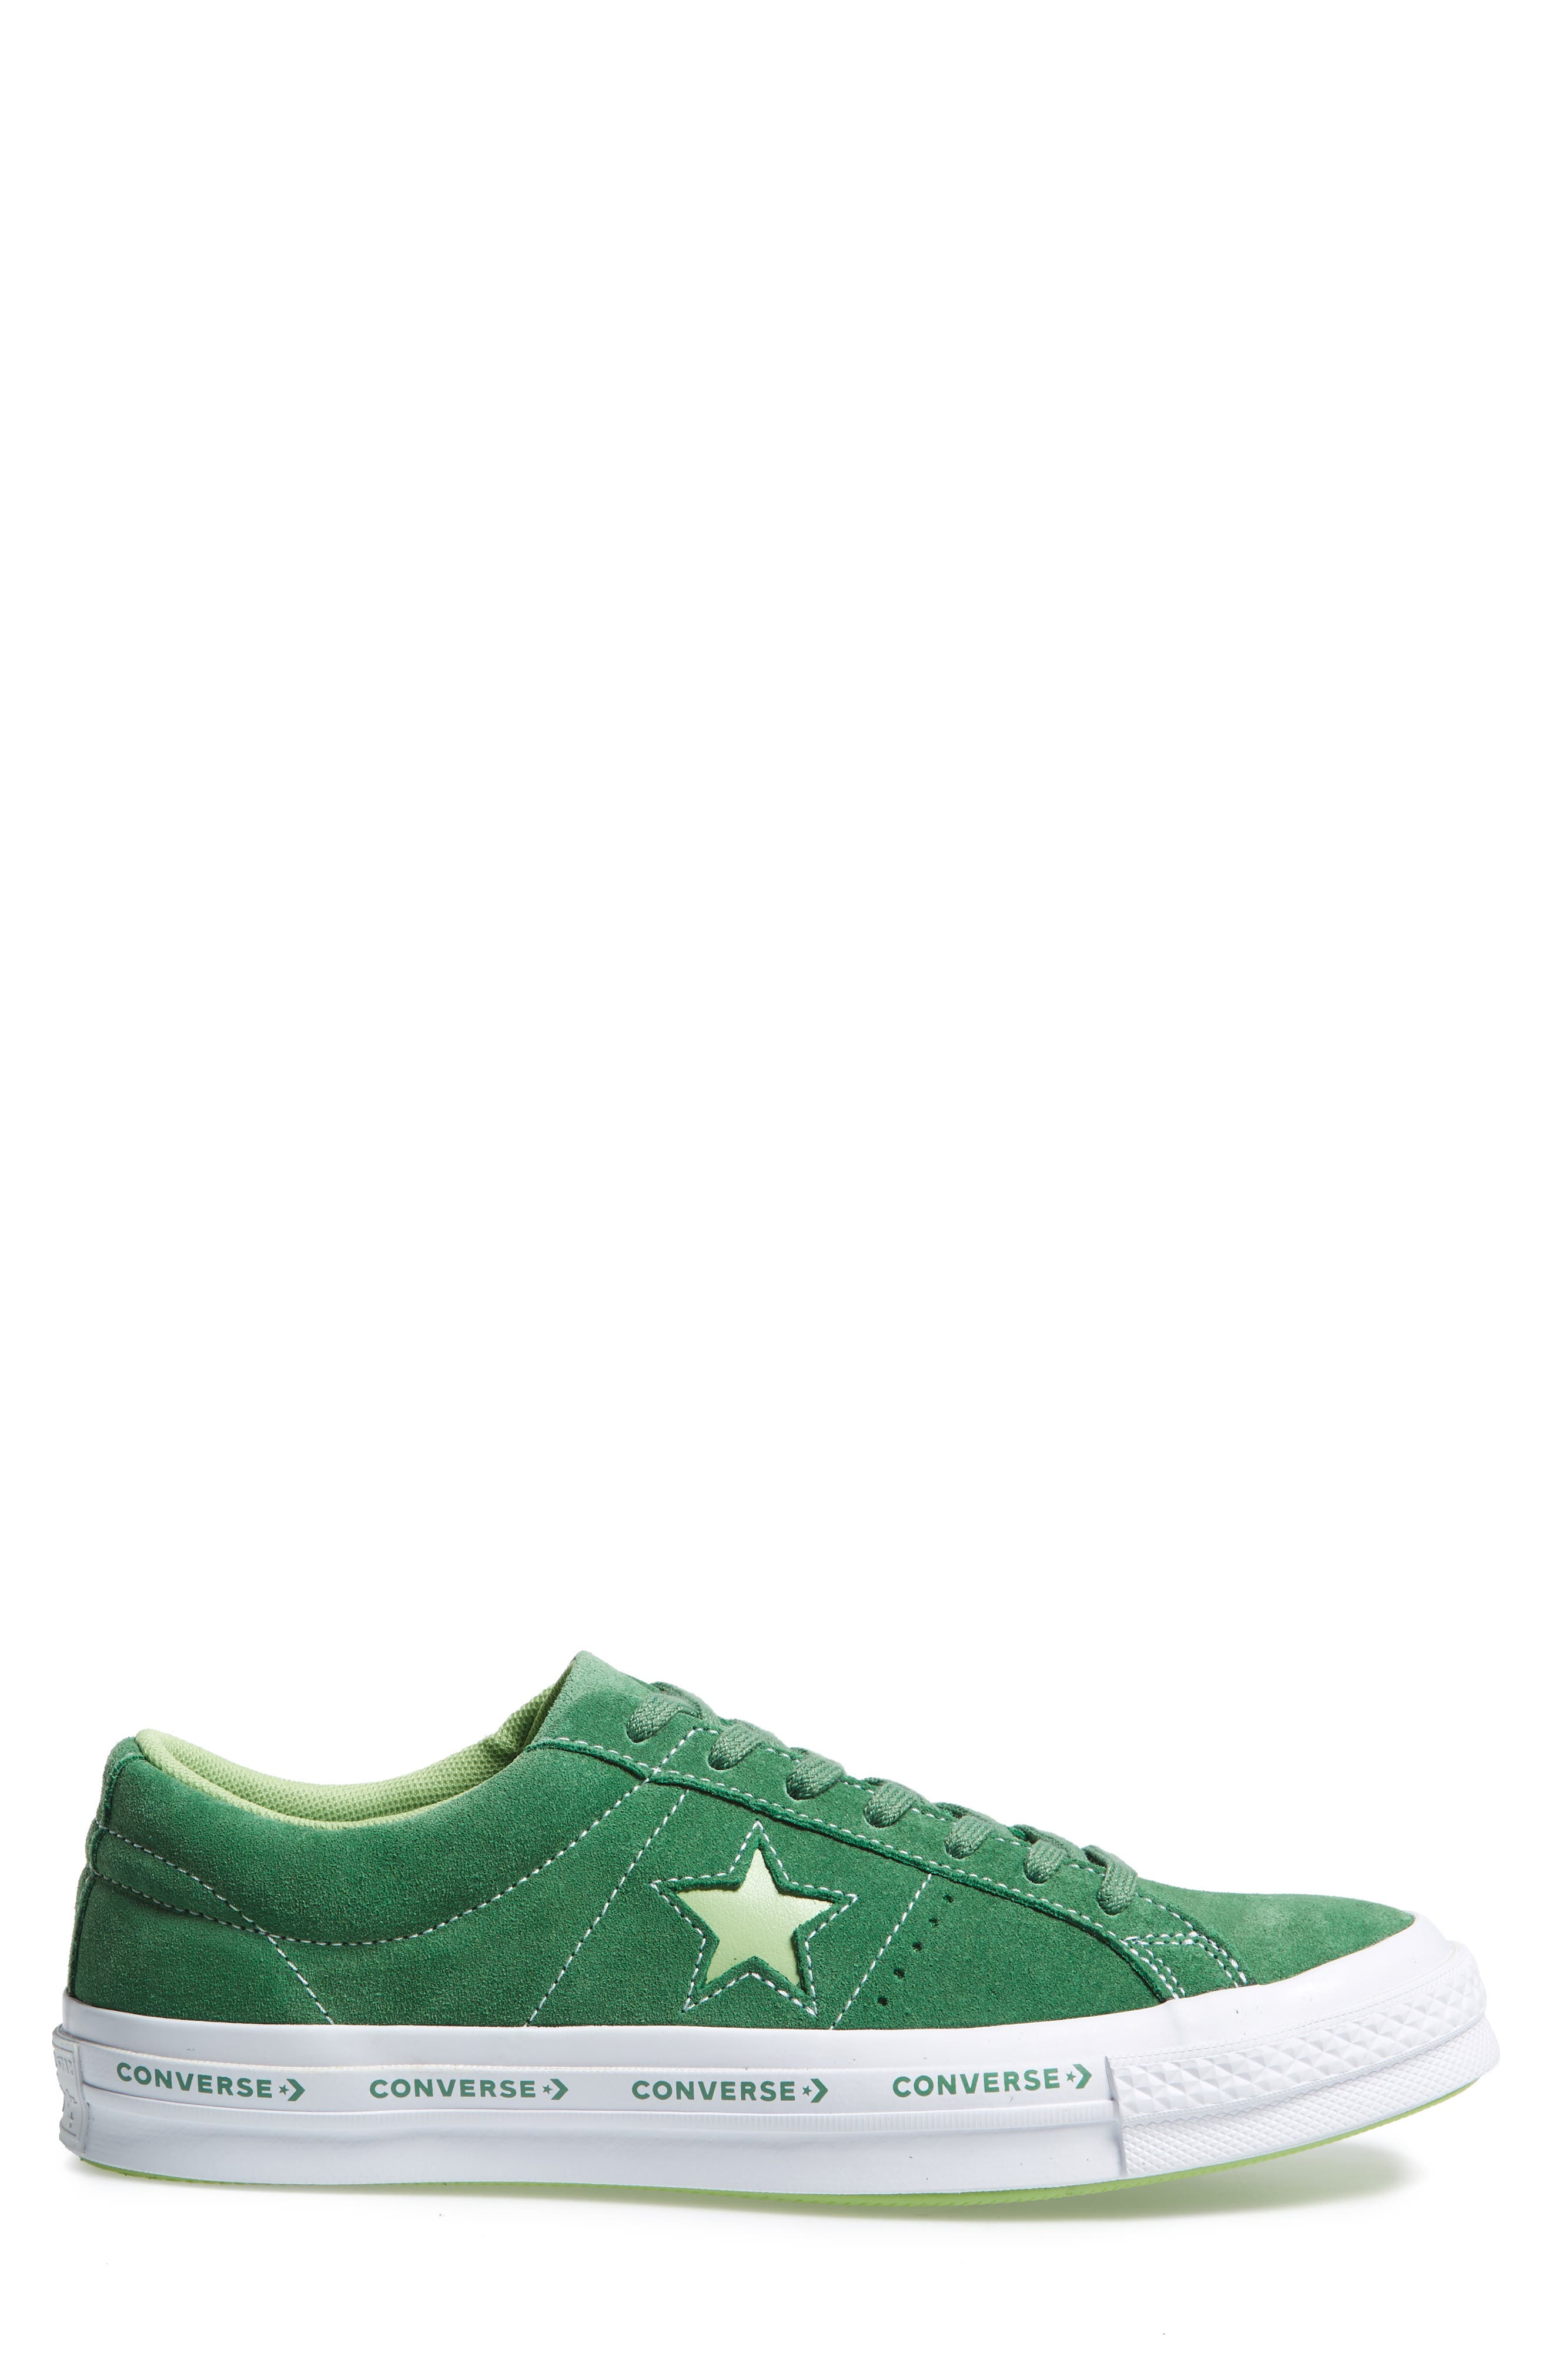 Chuck Taylor<sup>®</sup> One Star Pinstripe Sneaker,                             Alternate thumbnail 3, color,                             350